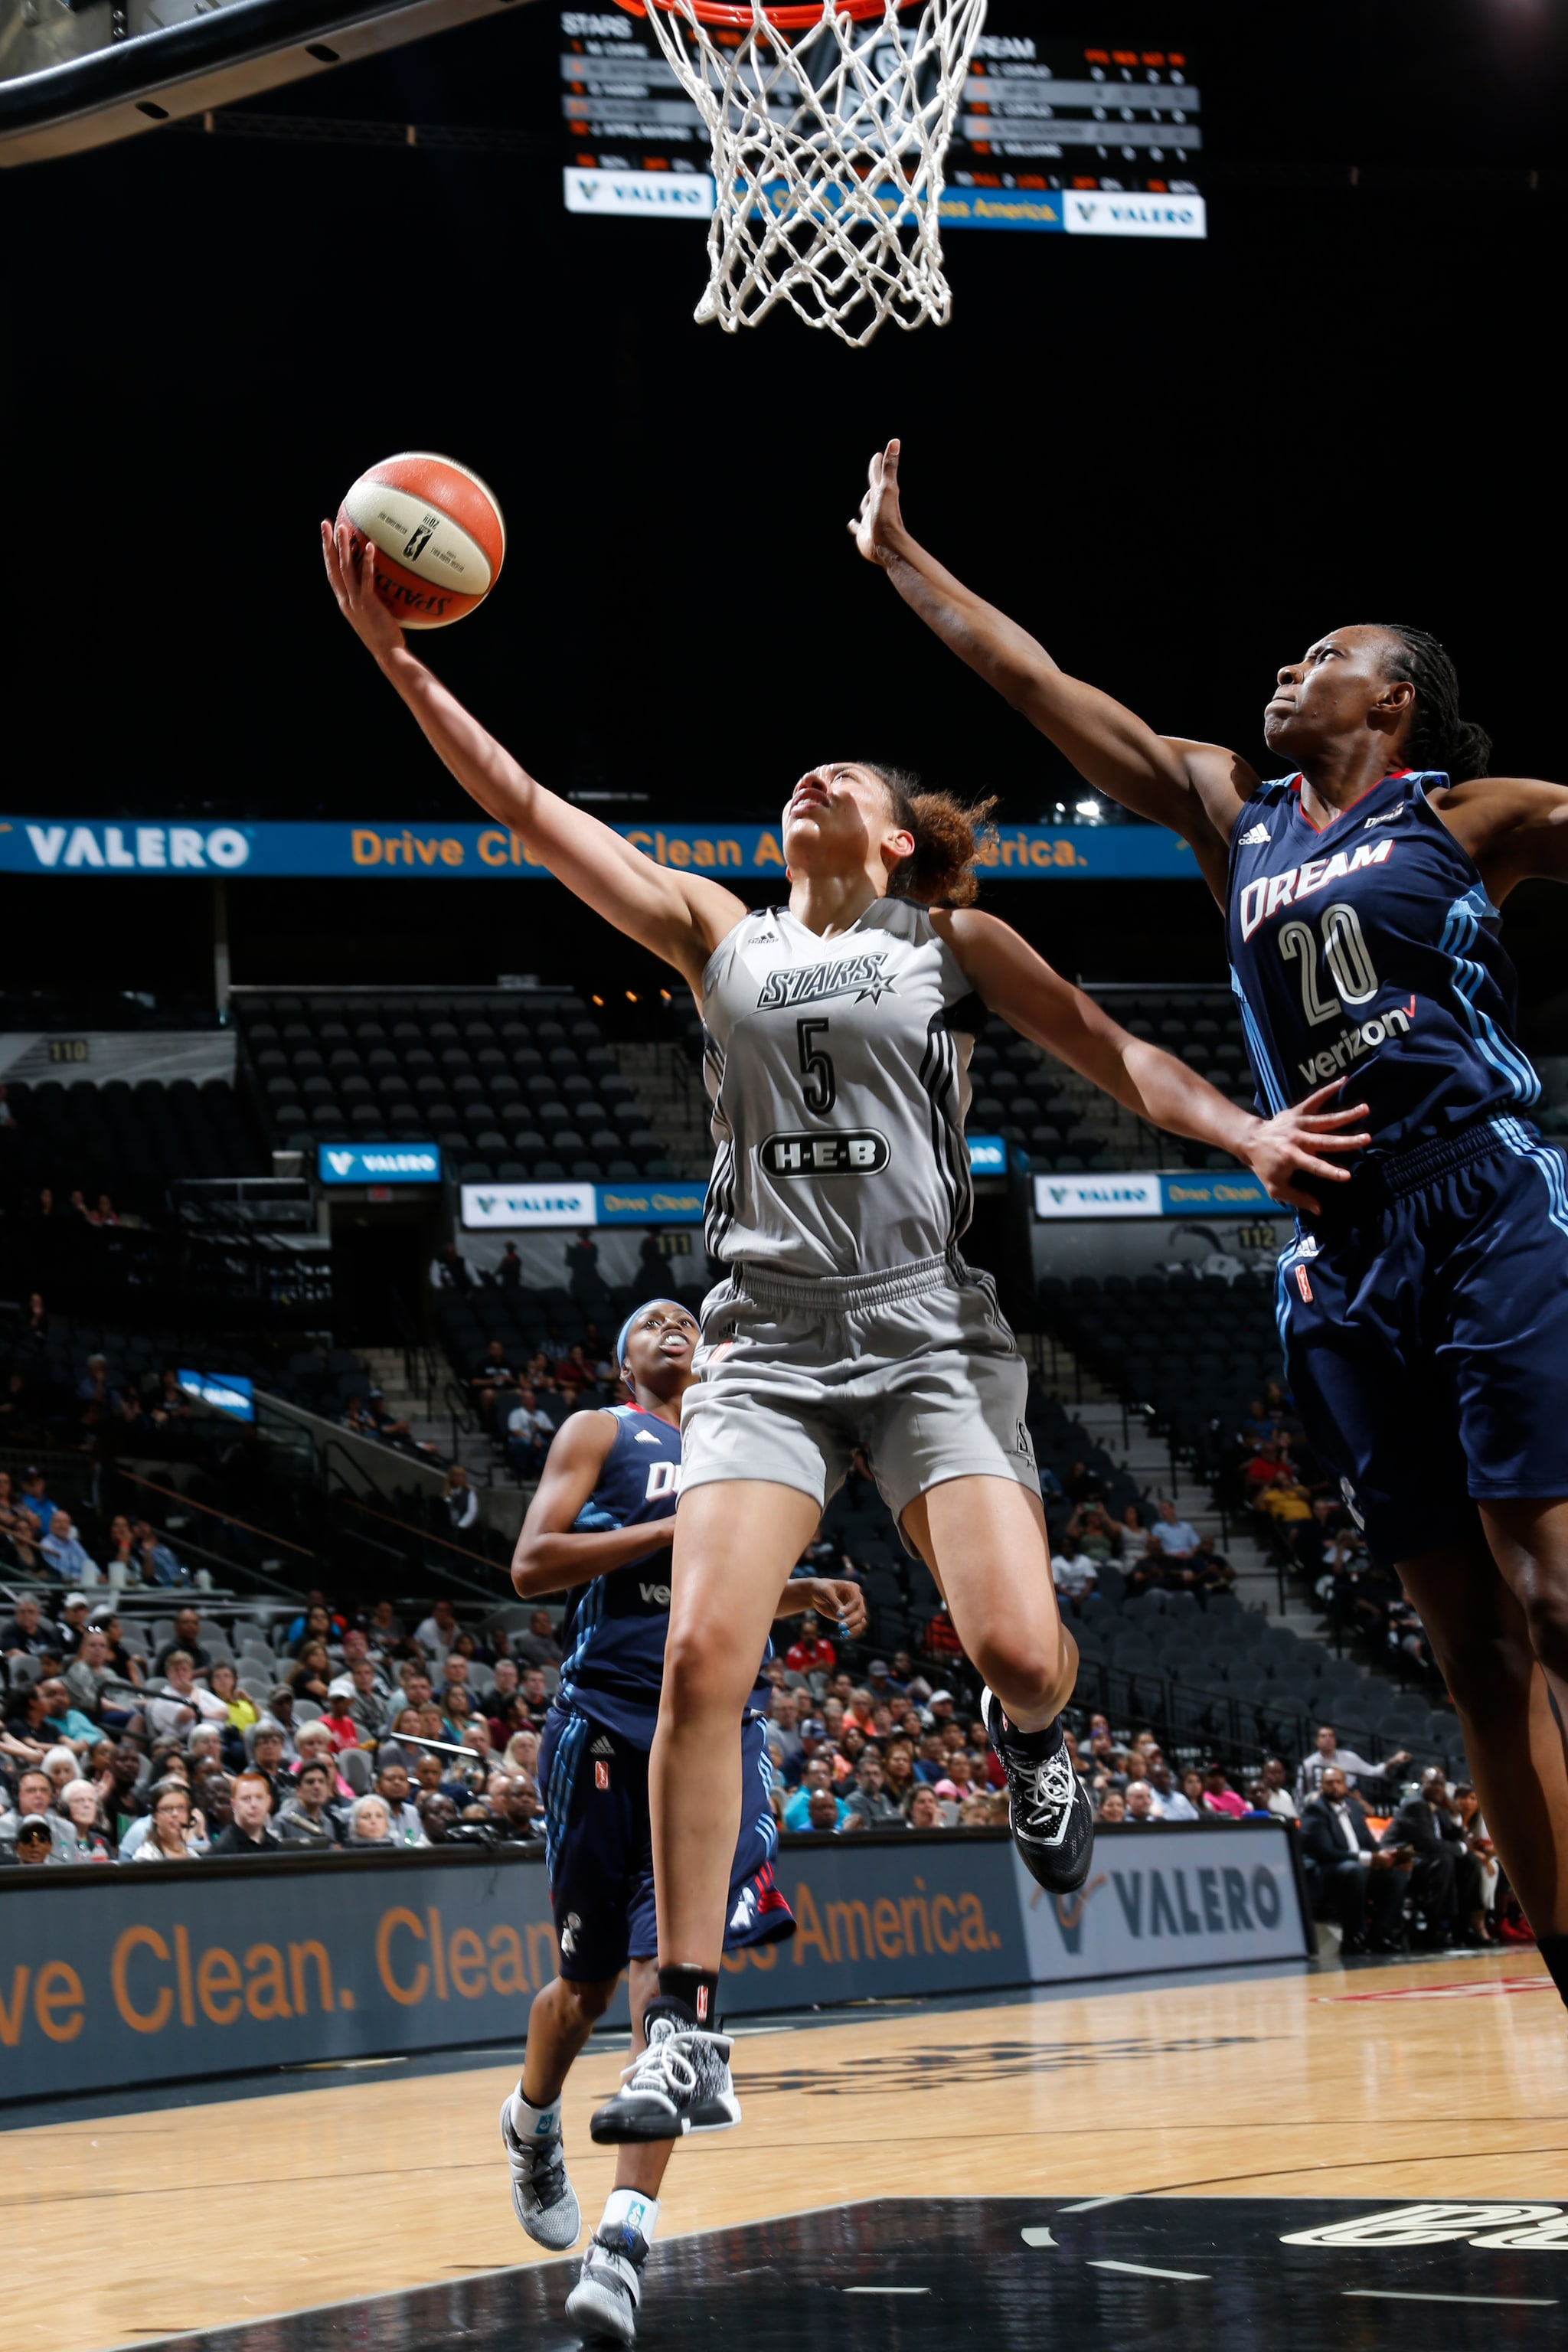 SAN ANTONIO, TX - MAY 14: Dearica Hamby #5 of the San Antonio Stars goes for the lay up against Sancho Lyttle #20 of the Atlanta Dream during the game on May 14, 2016 at AT&T Center in San Antonio, Texas. NOTE TO USER: User expressly acknowledges and agrees that, by downloading and or using this Photograph, user is consenting to the terms and conditions of the Getty Images License Agreement. Mandatory Copyright Notice: Copyright 2016 NBAE (Photo by Chris Covatta/NBAE via Getty Images)